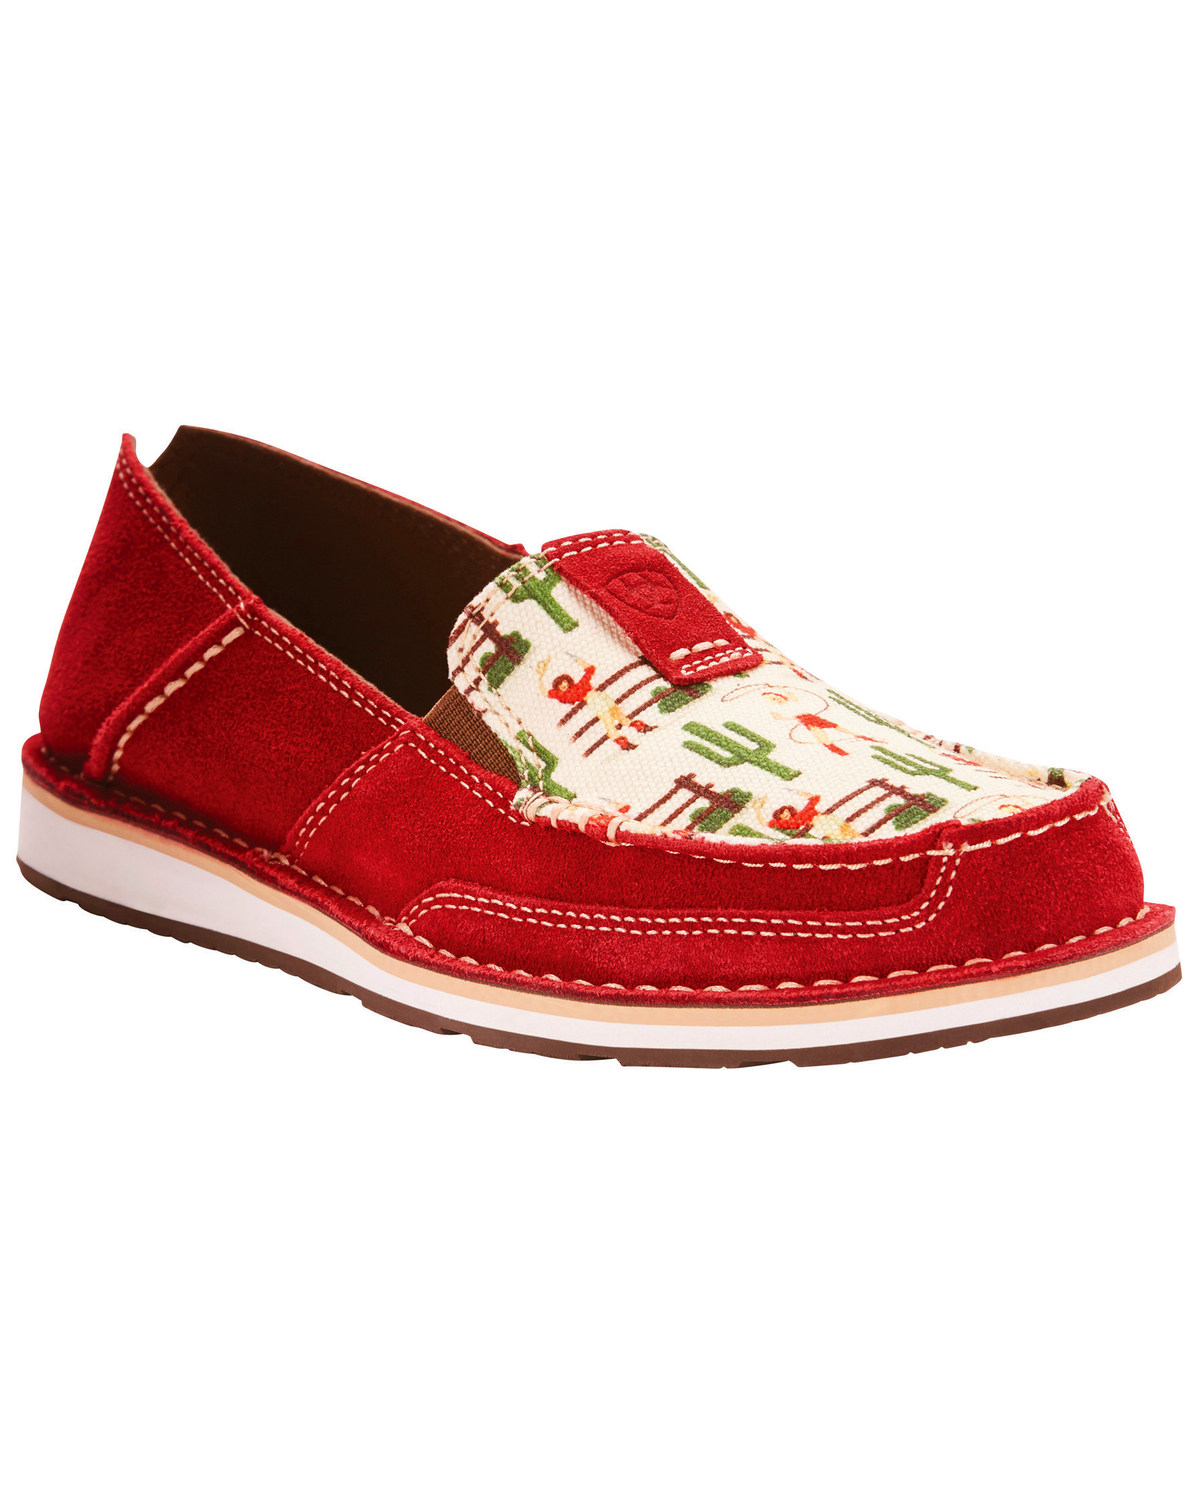 9561ab31710 Ariat Women s Vintage Cowgirl Print Cruiser Slip On Shoes - Moc Toe ...